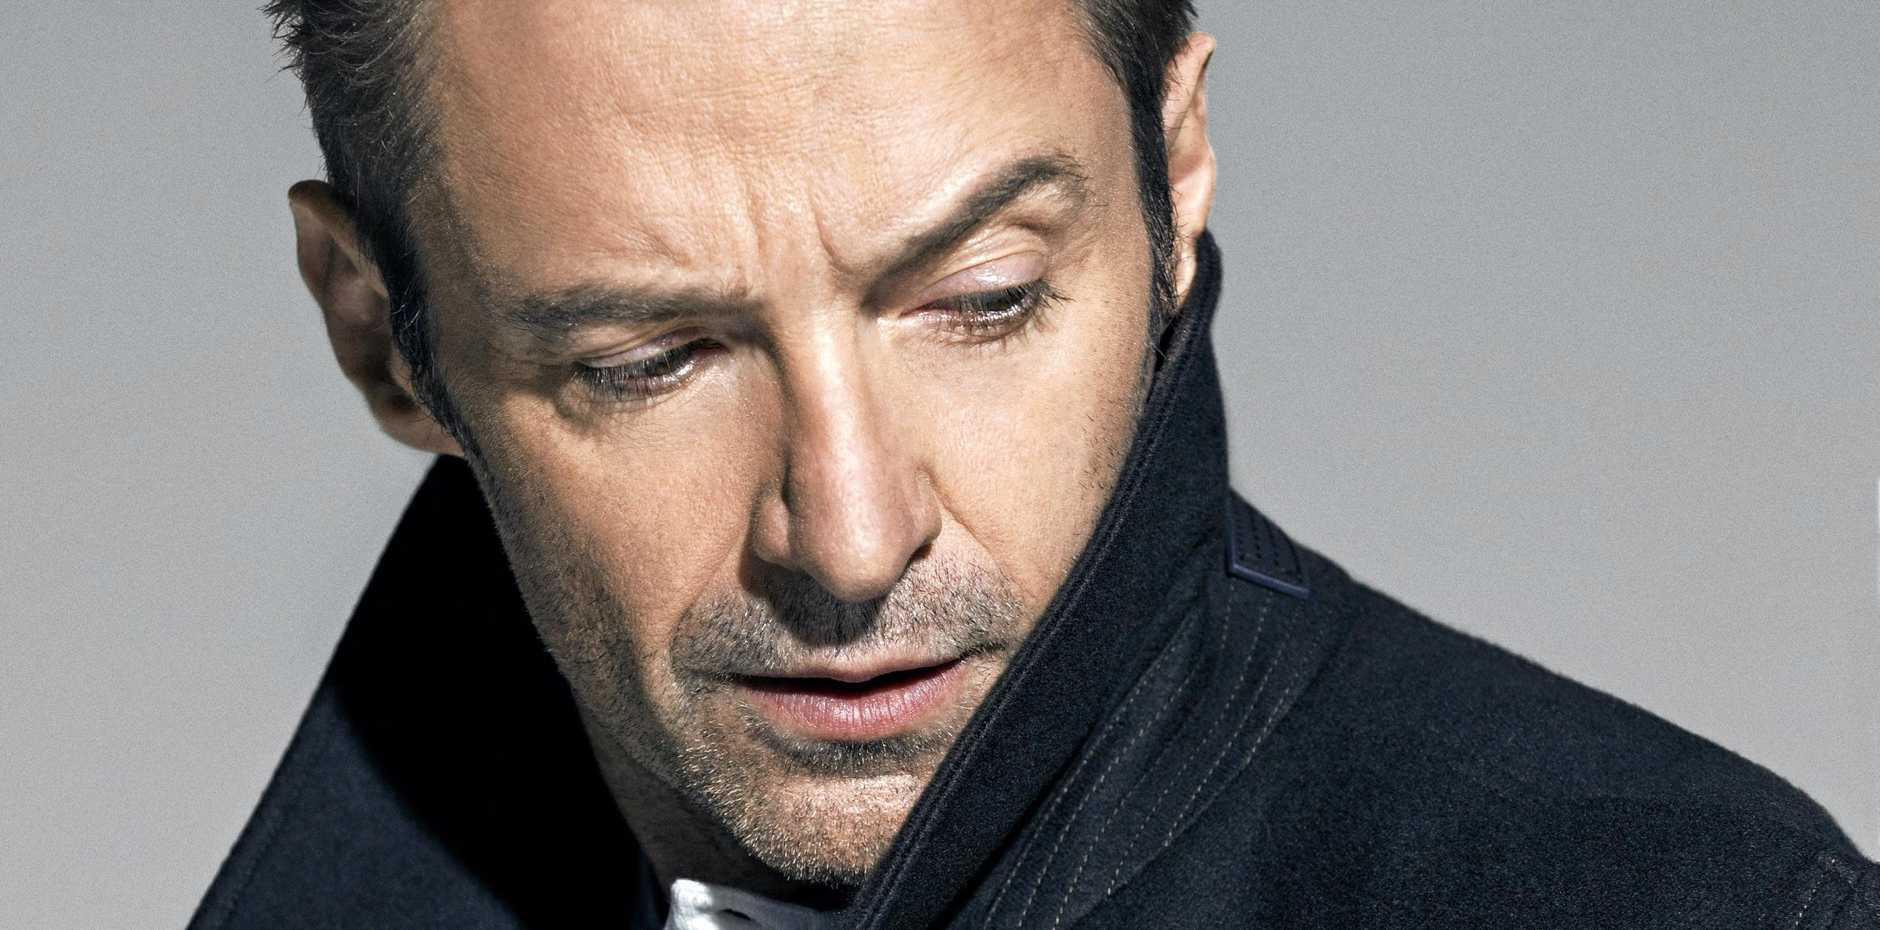 COMING HOME: Hugh Jackman will tour Australia in August with his show.